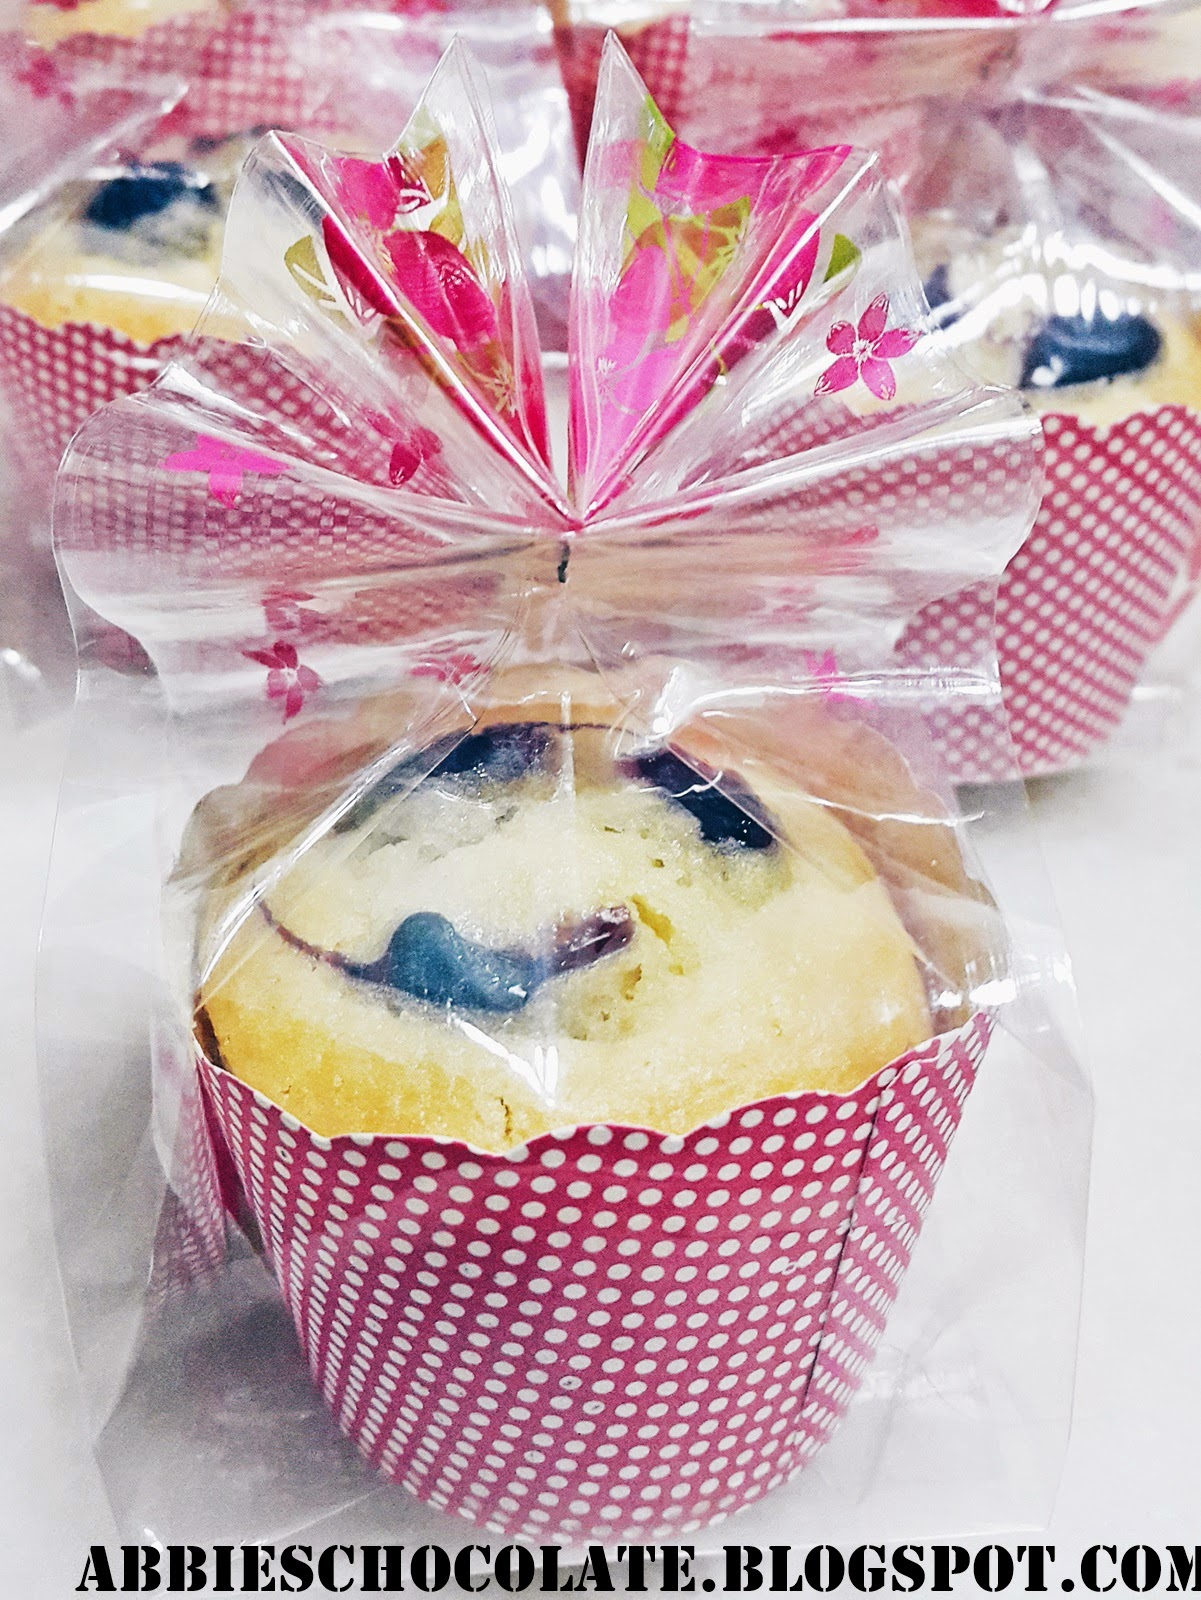 Abbies Chocolate: Simple Muffins Door gift! [suggested]